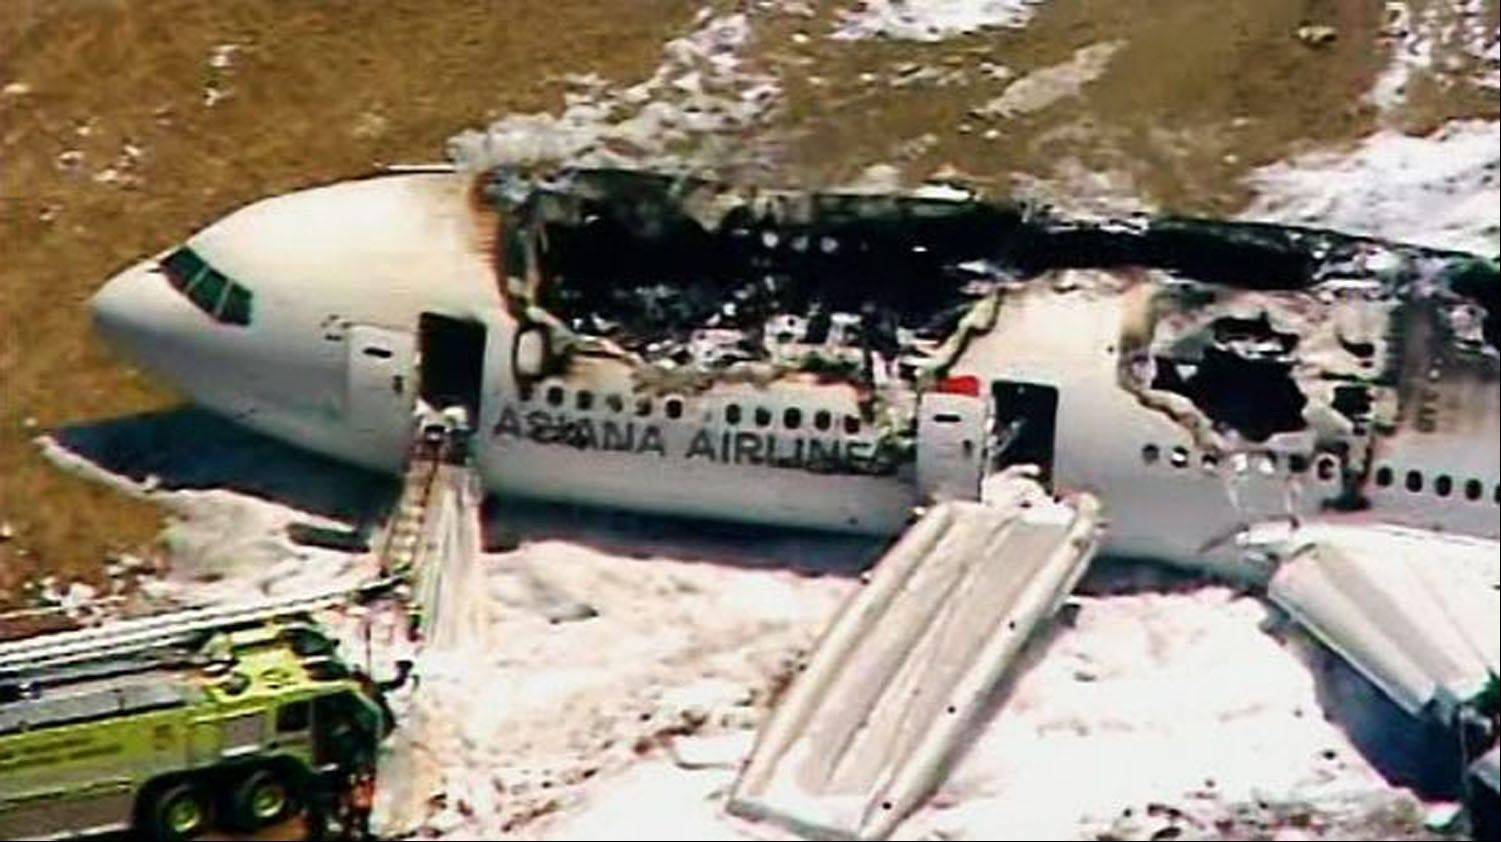 This frame grab from video provided by KTVU shows the scene after an Asiana Airlines flight crashed while landing at San Francisco Airport on Saturday, July 6, 2013, in San Francisco.